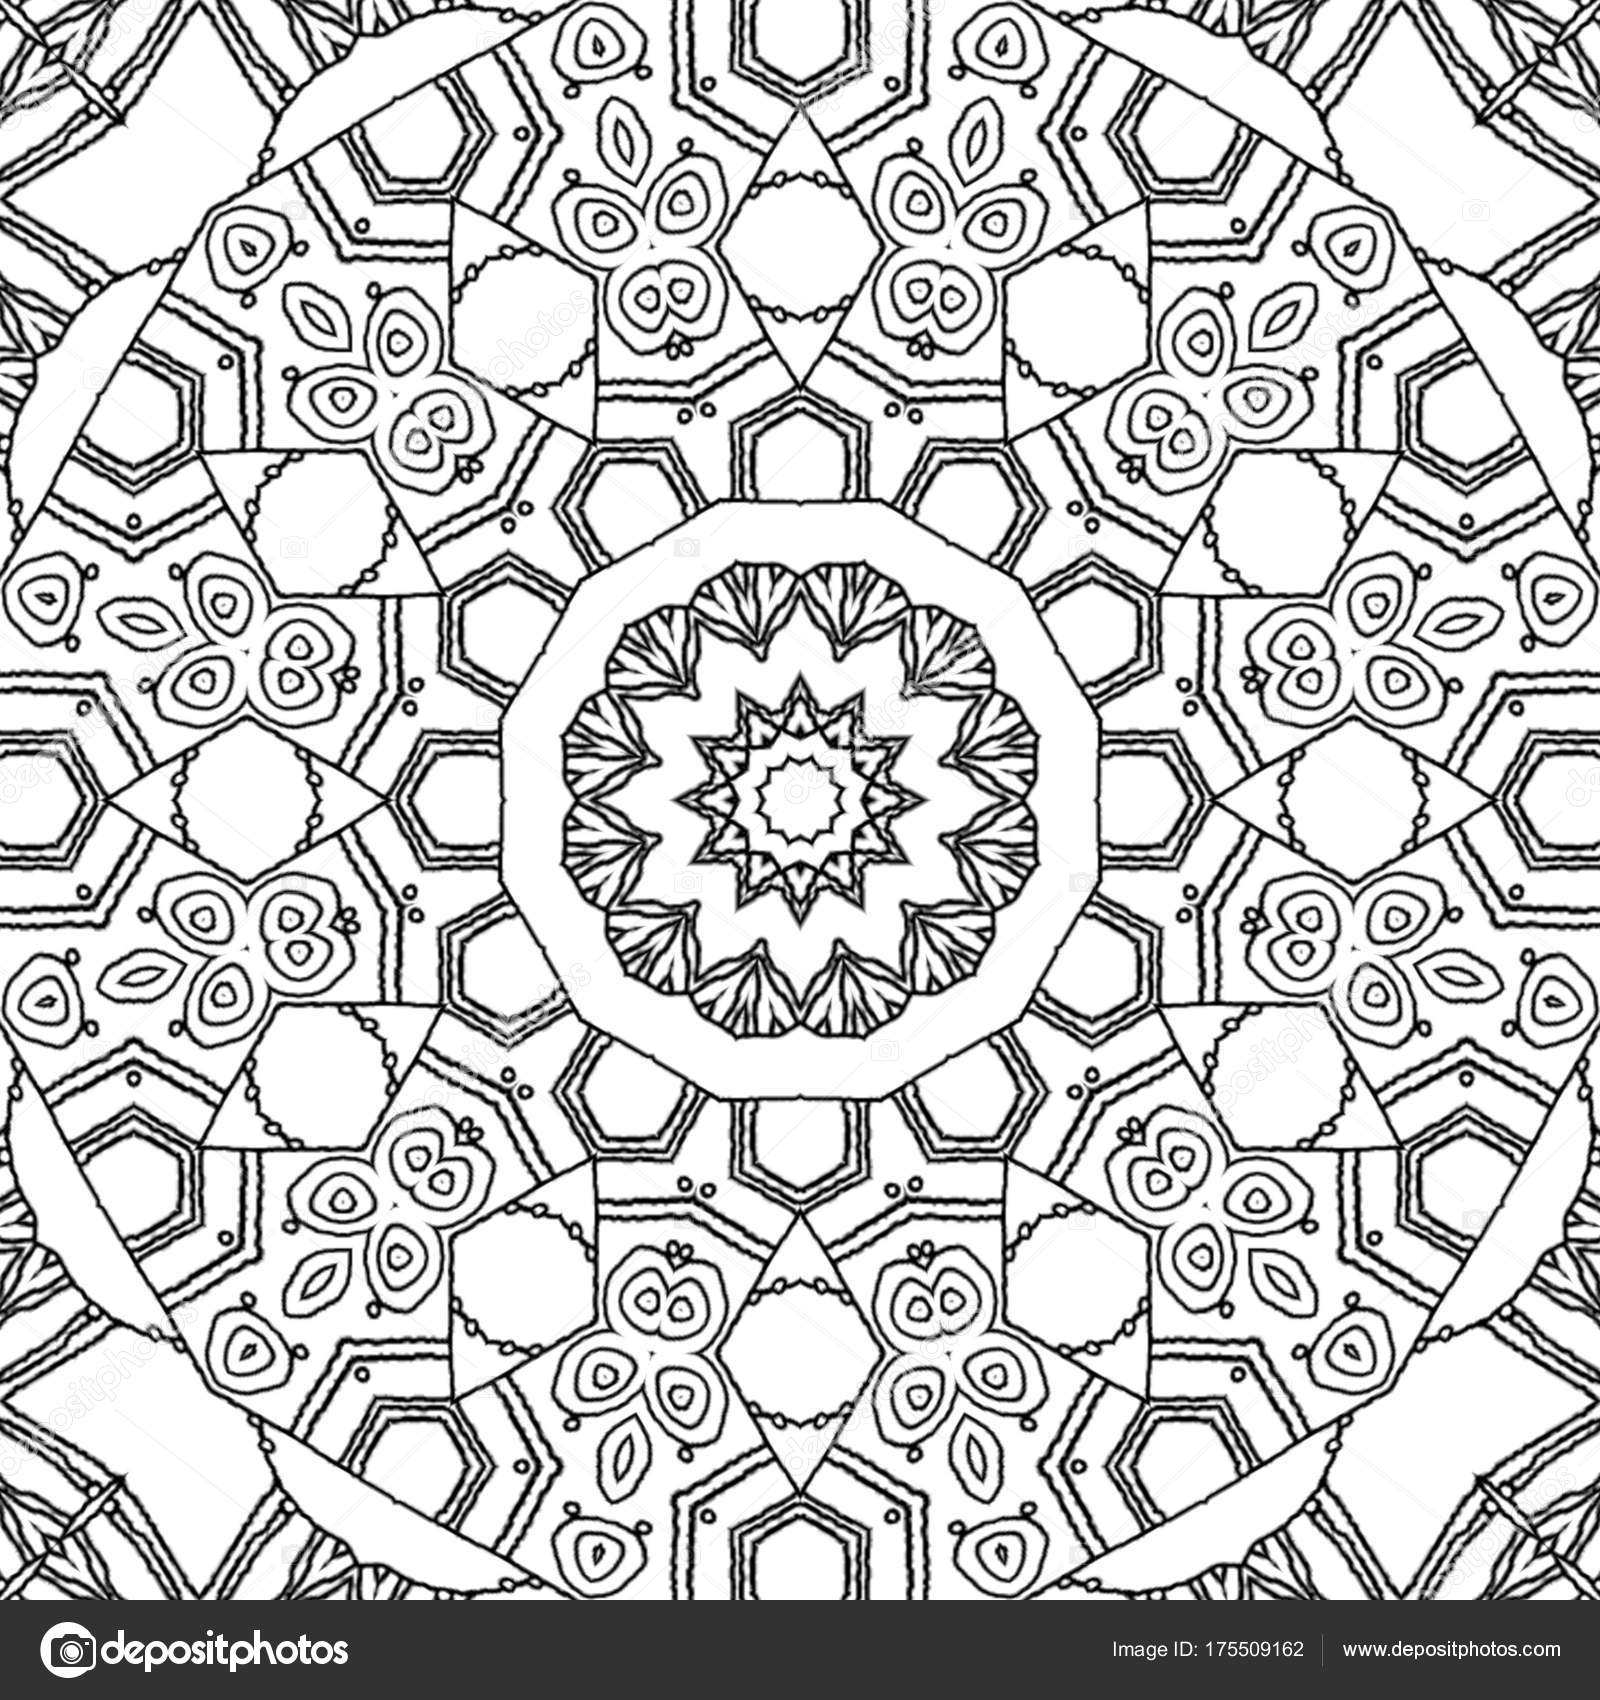 Abstract coloring page drawing monochrome mandala ornament centered star different stock image